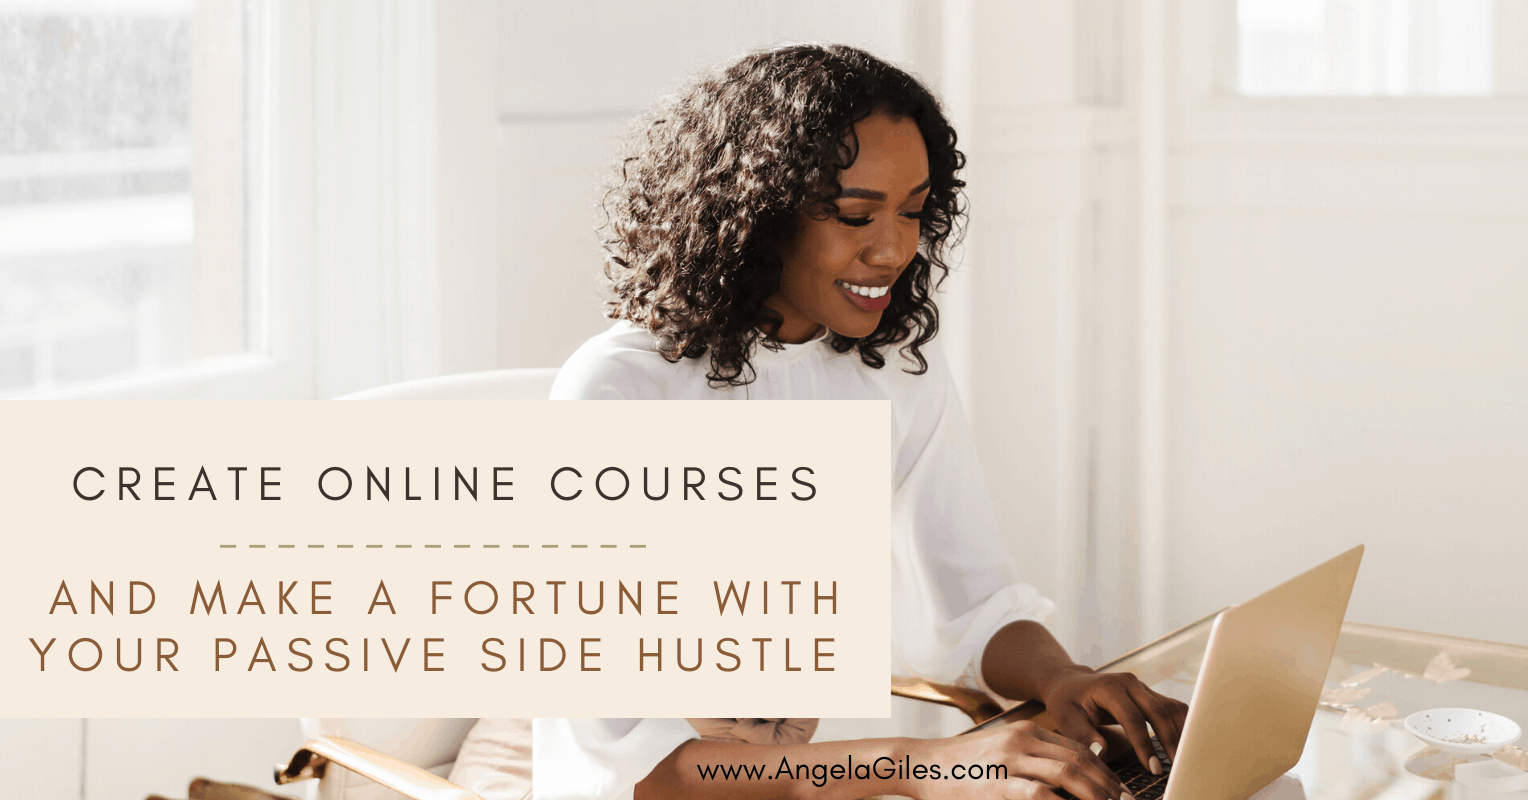 Create Online Courses And Make A Fortune With Your Passive Side Hustle